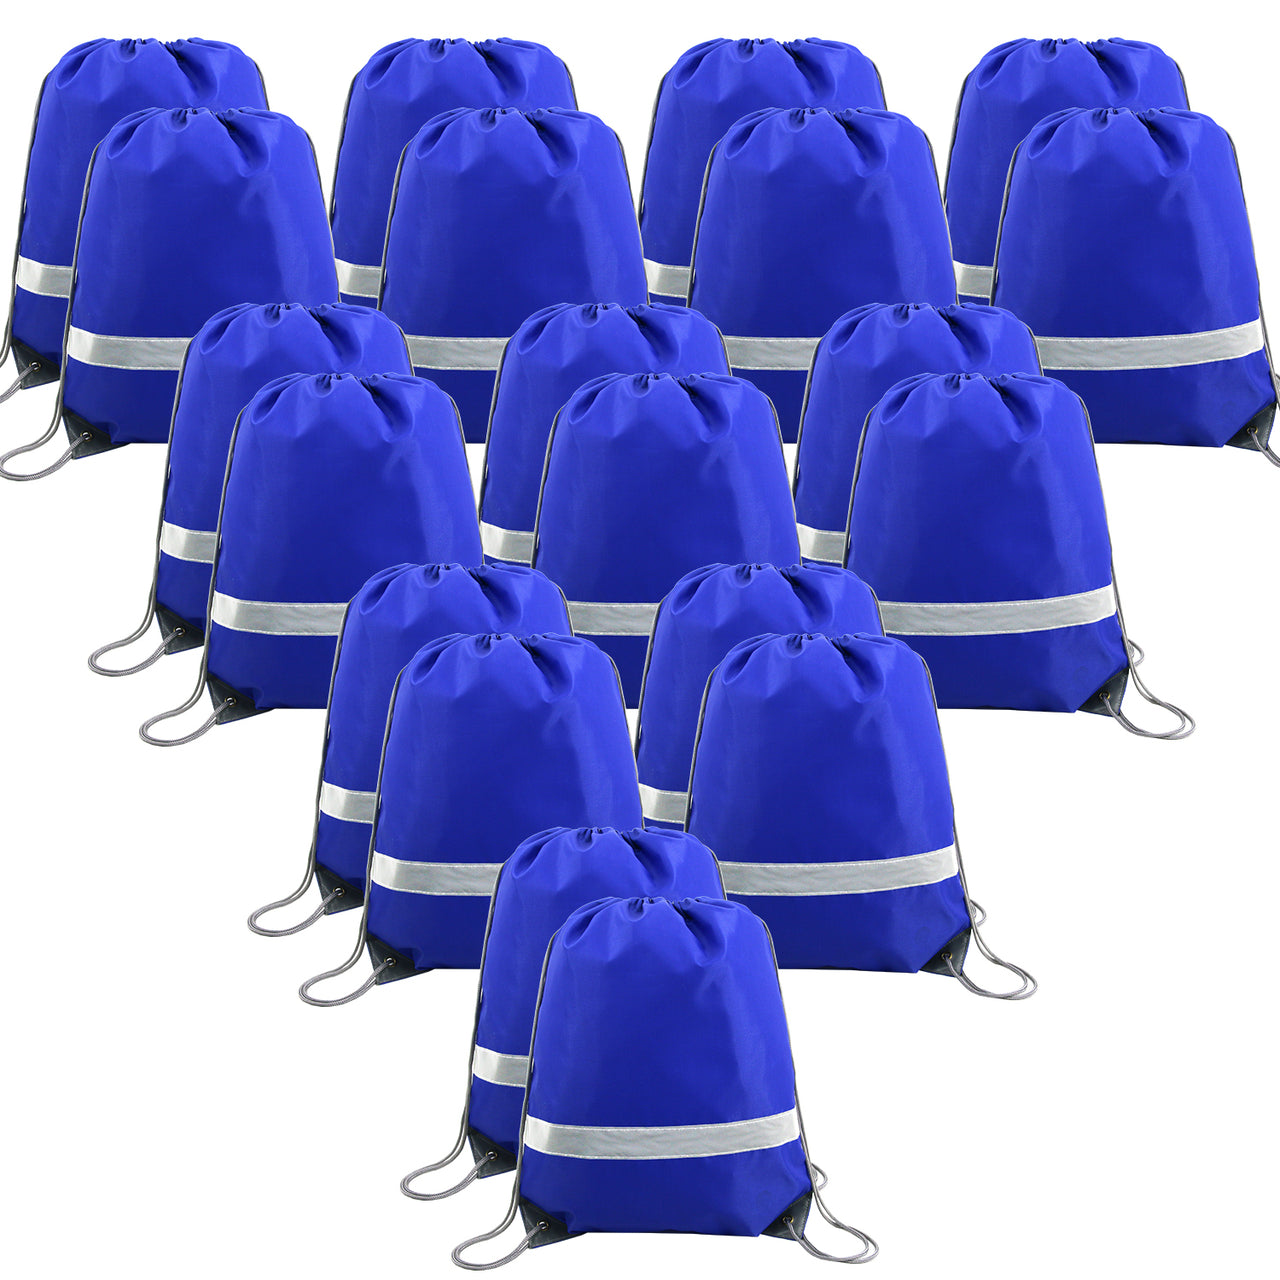 BeeGreen Reflective Drawstring Backpack Bags 20 Pack